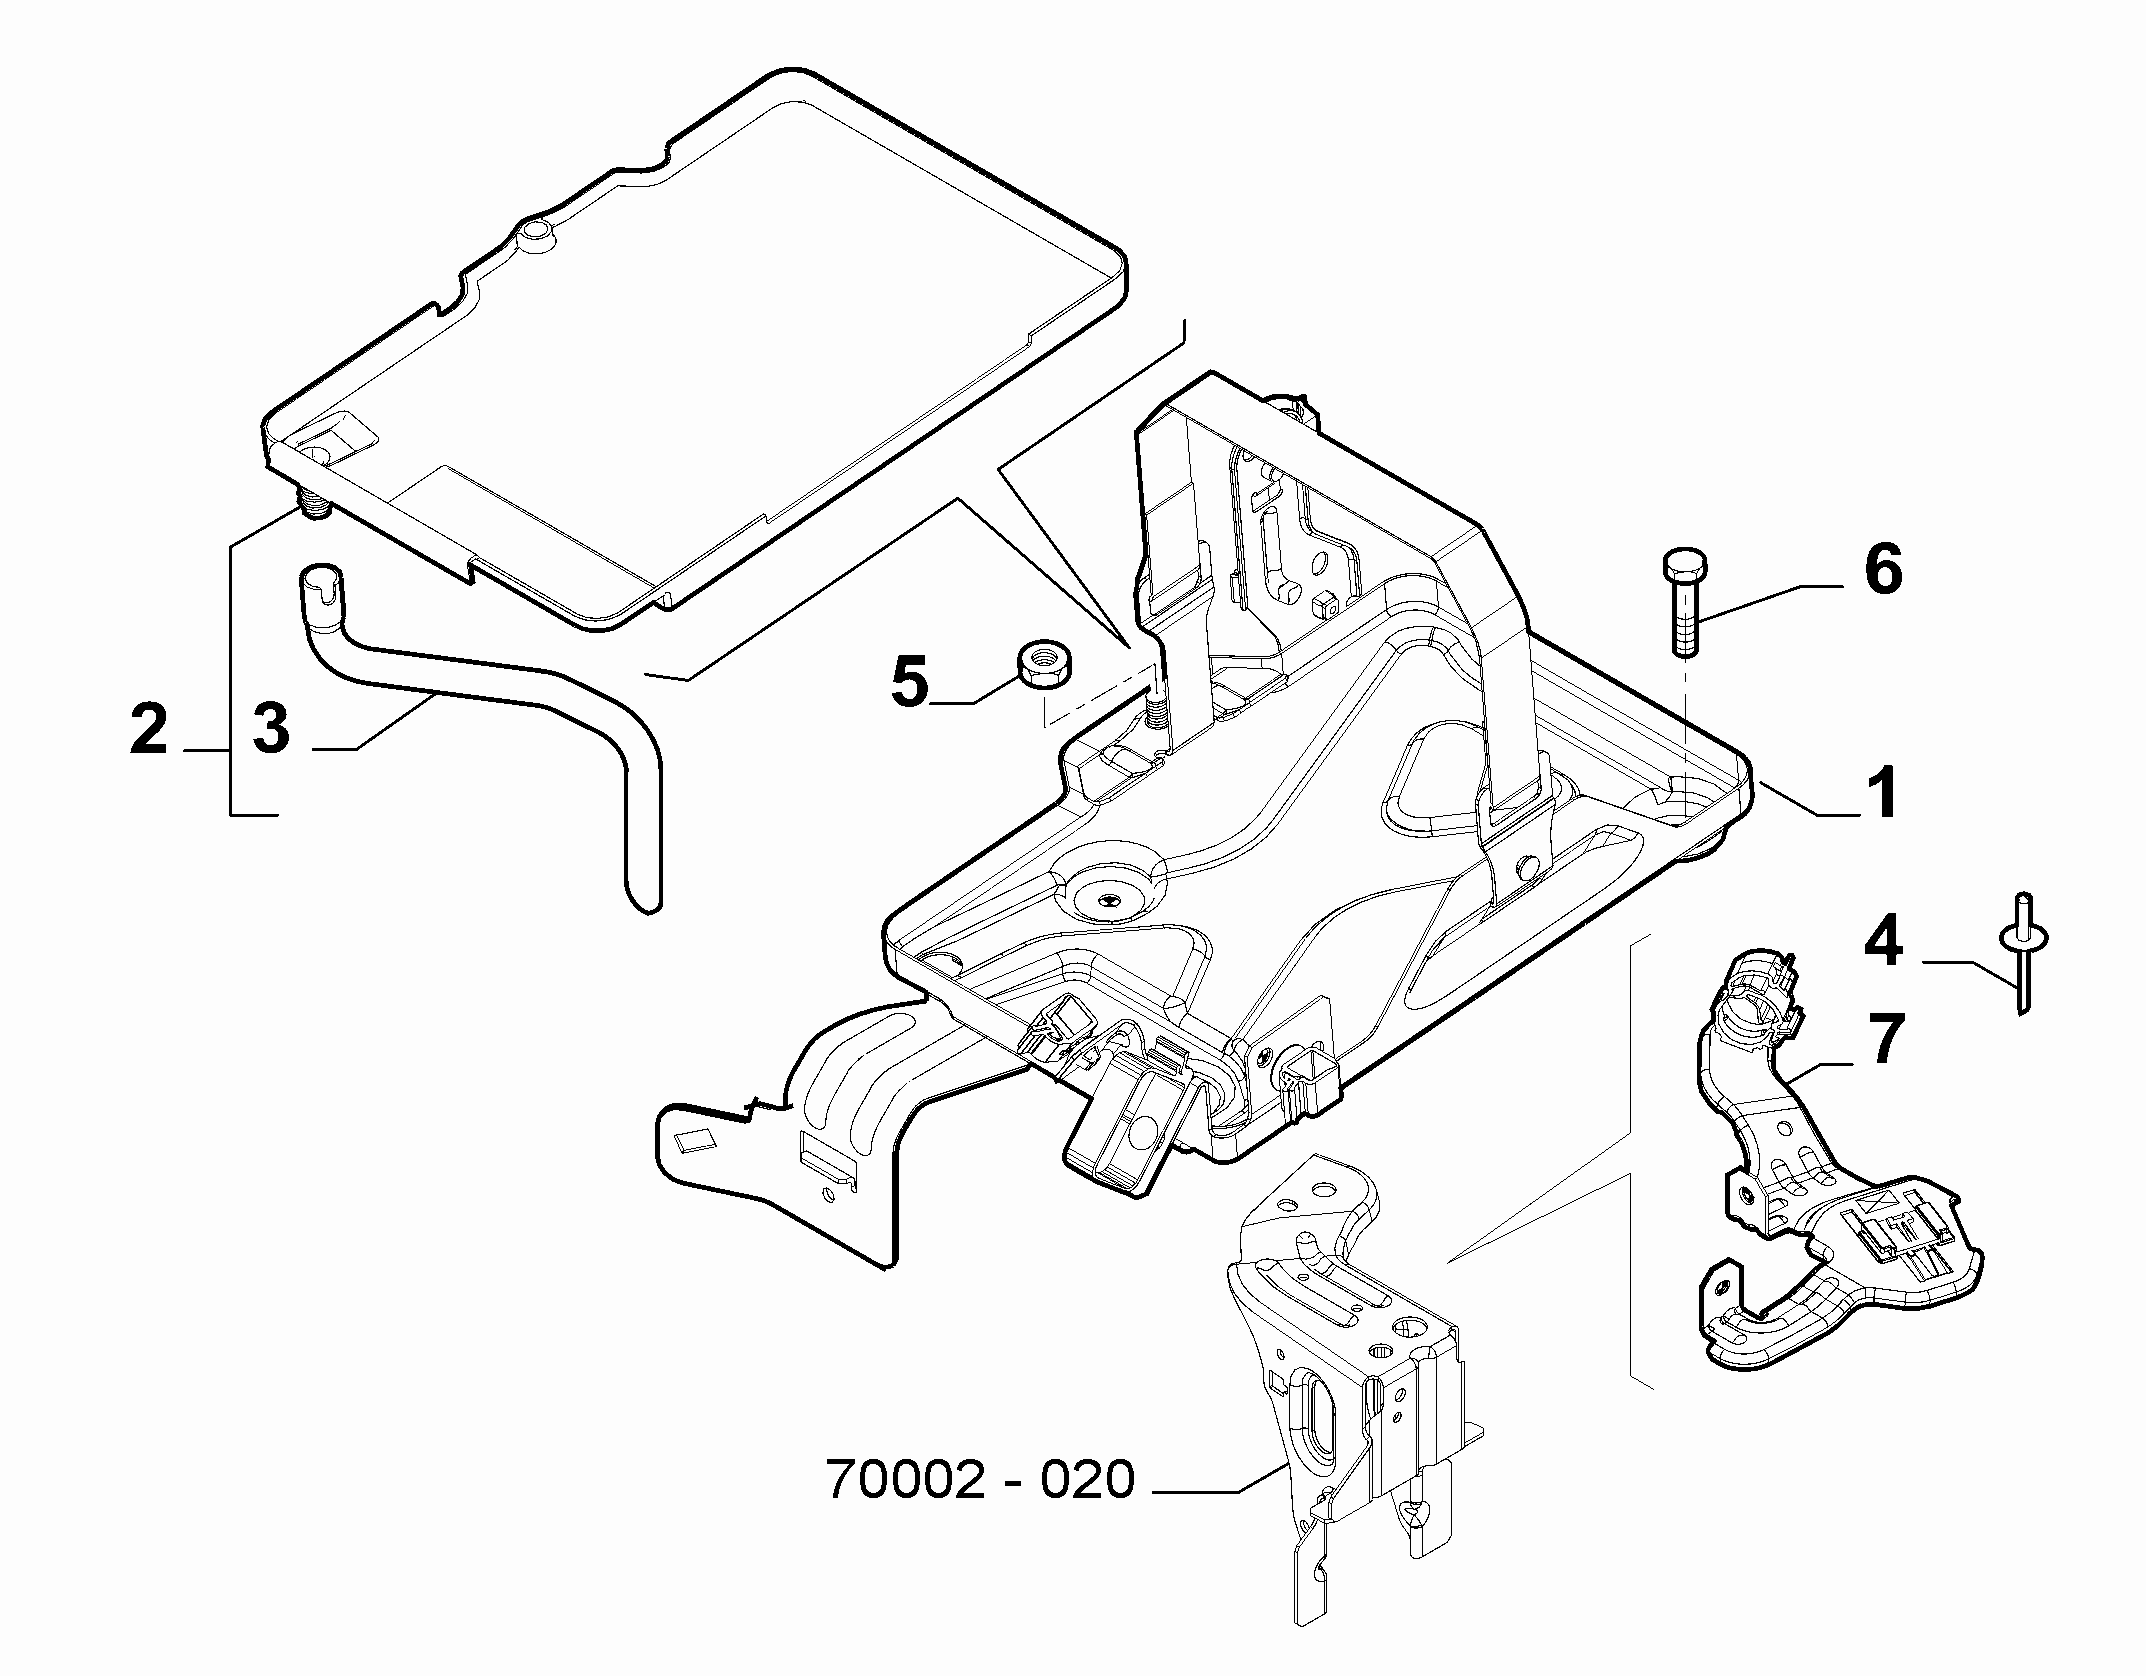 55300-030 BATTERY SUPPORT